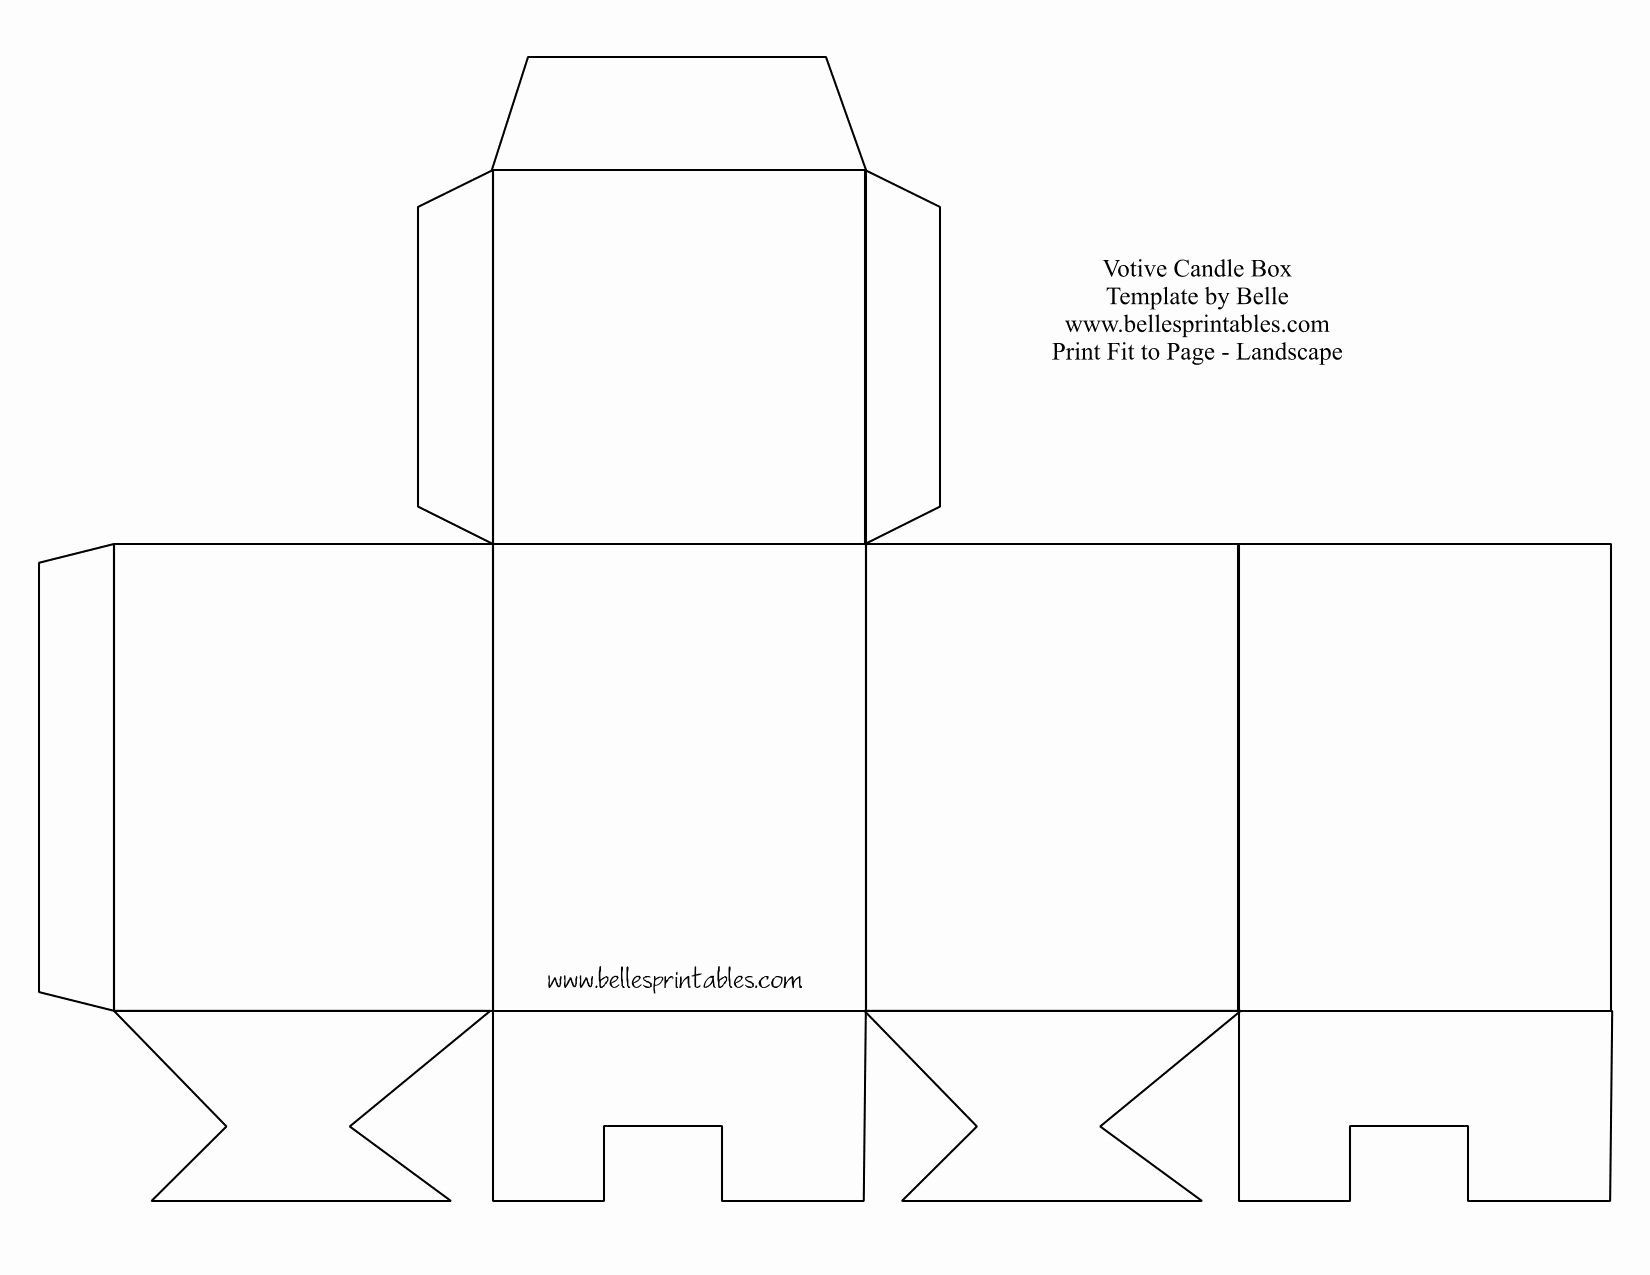 Gift Box Template Printable Beautiful Votive Candle Box Needs Changing the Bottom Does Not